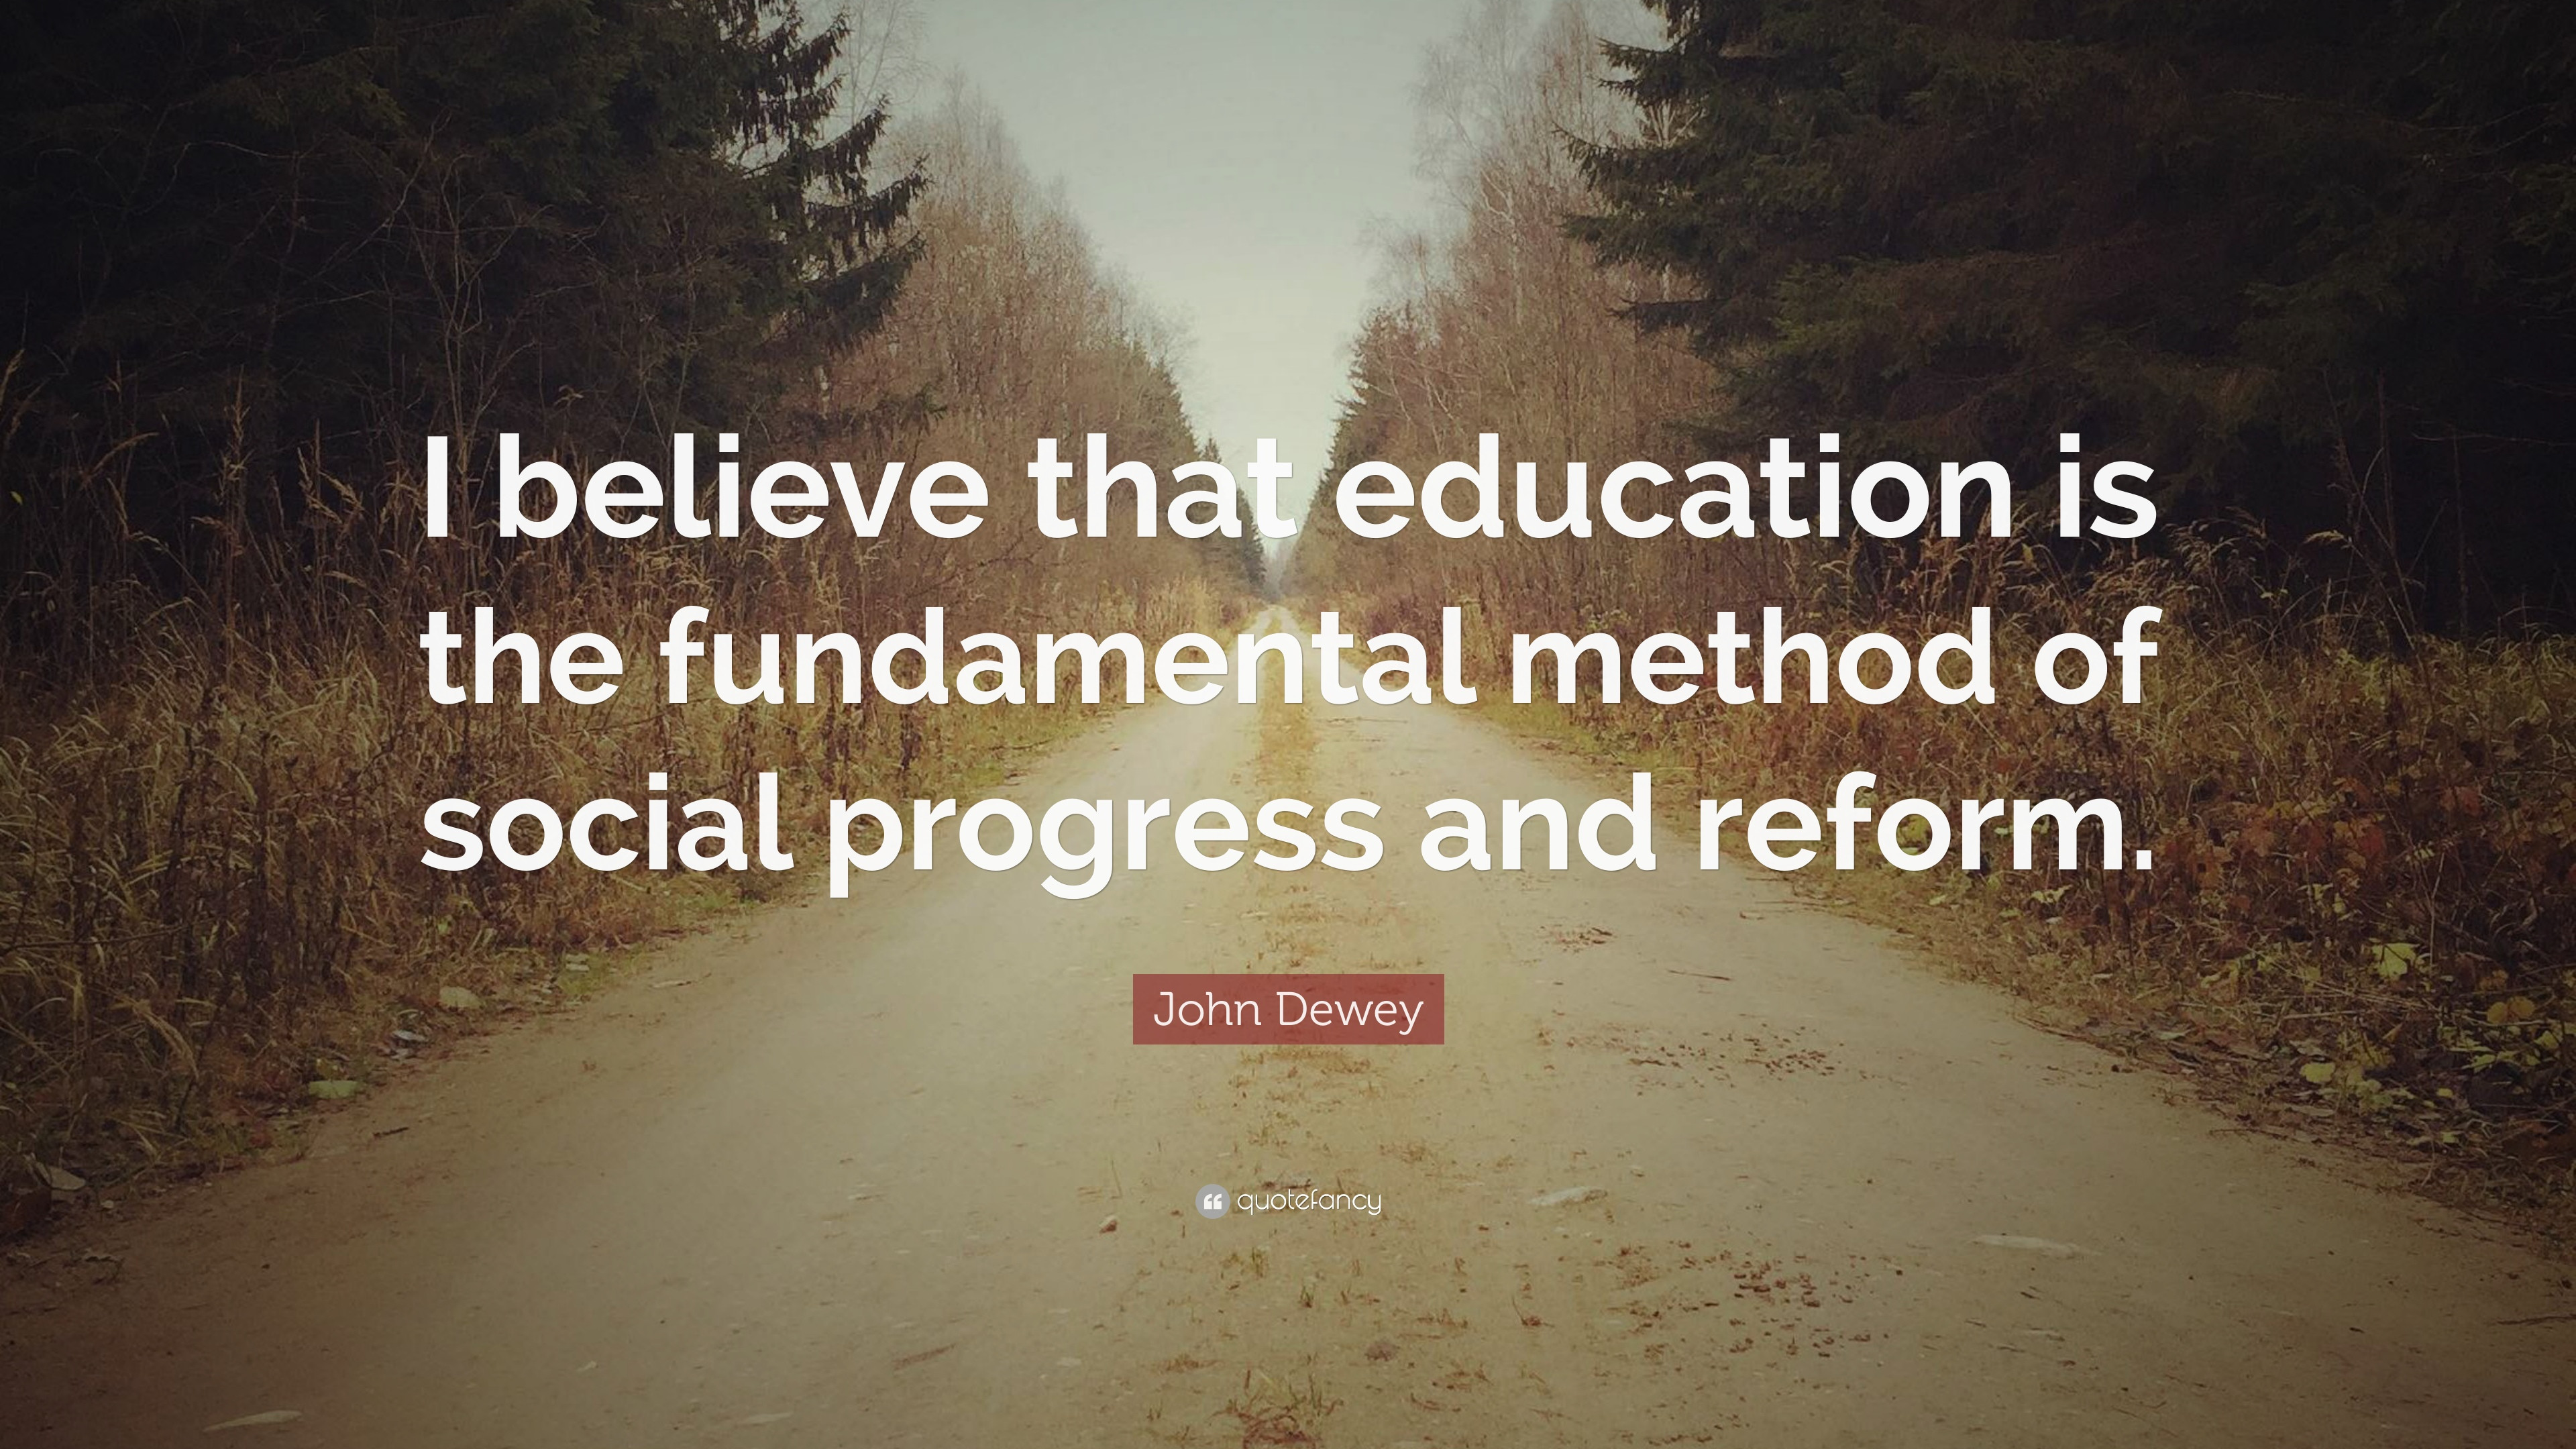 """John Dewey Quotes On Education  John Dewey Quote """"I believe that education is the"""